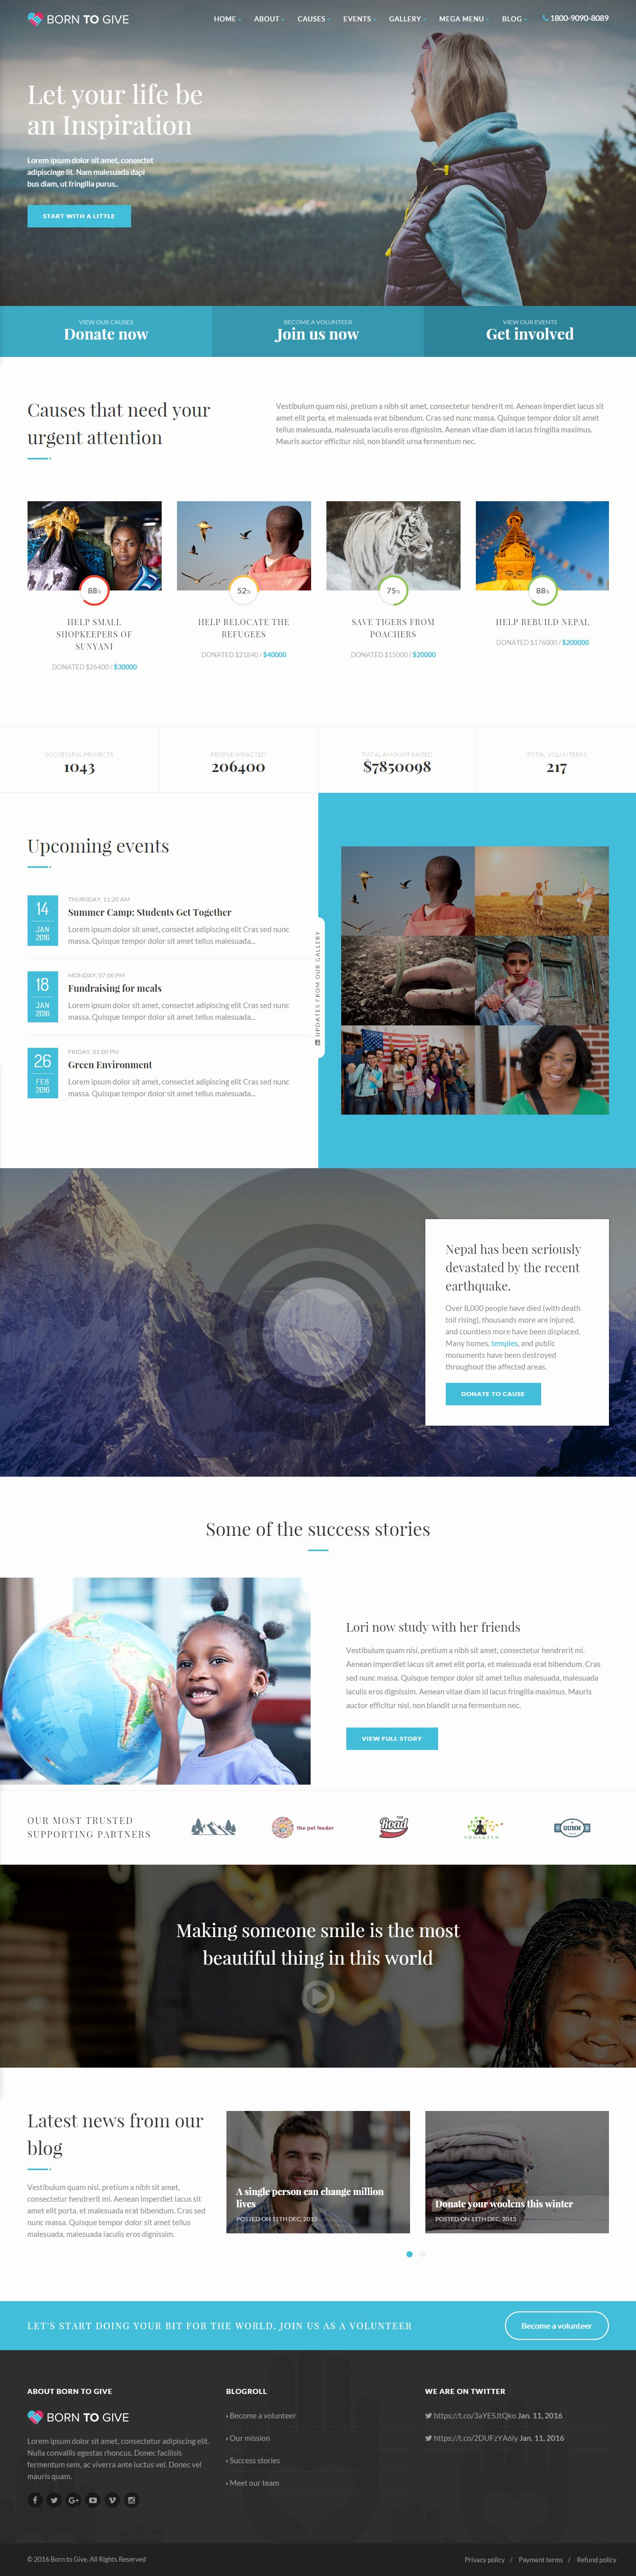 Parallax Website Template Free Awesome 40 Best Responsive Parallax Scrolling Website Template